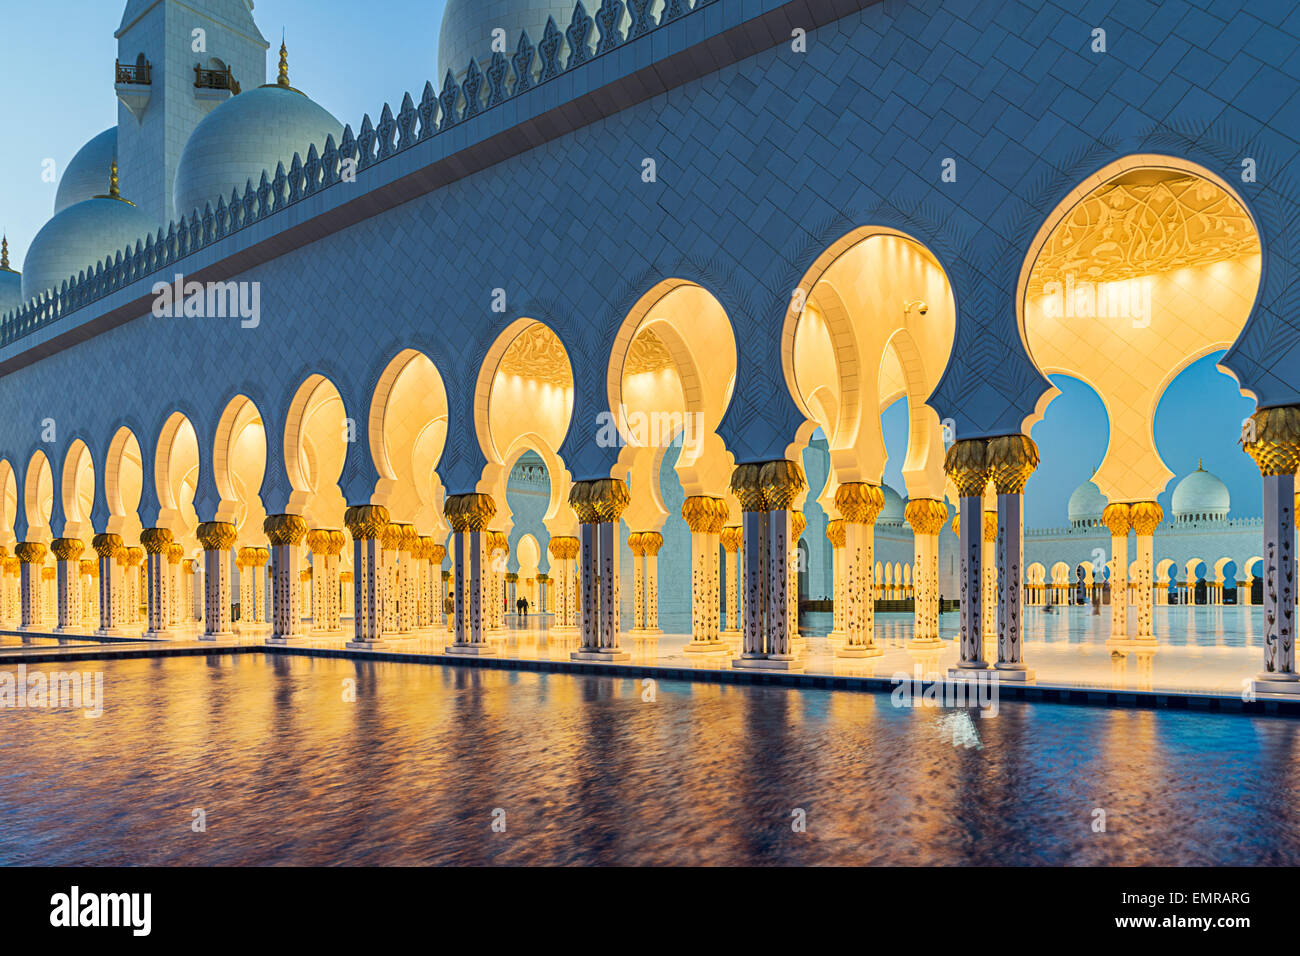 Grande Mosquée de Sheikh Zayed à Abu Dhabi Photo Stock